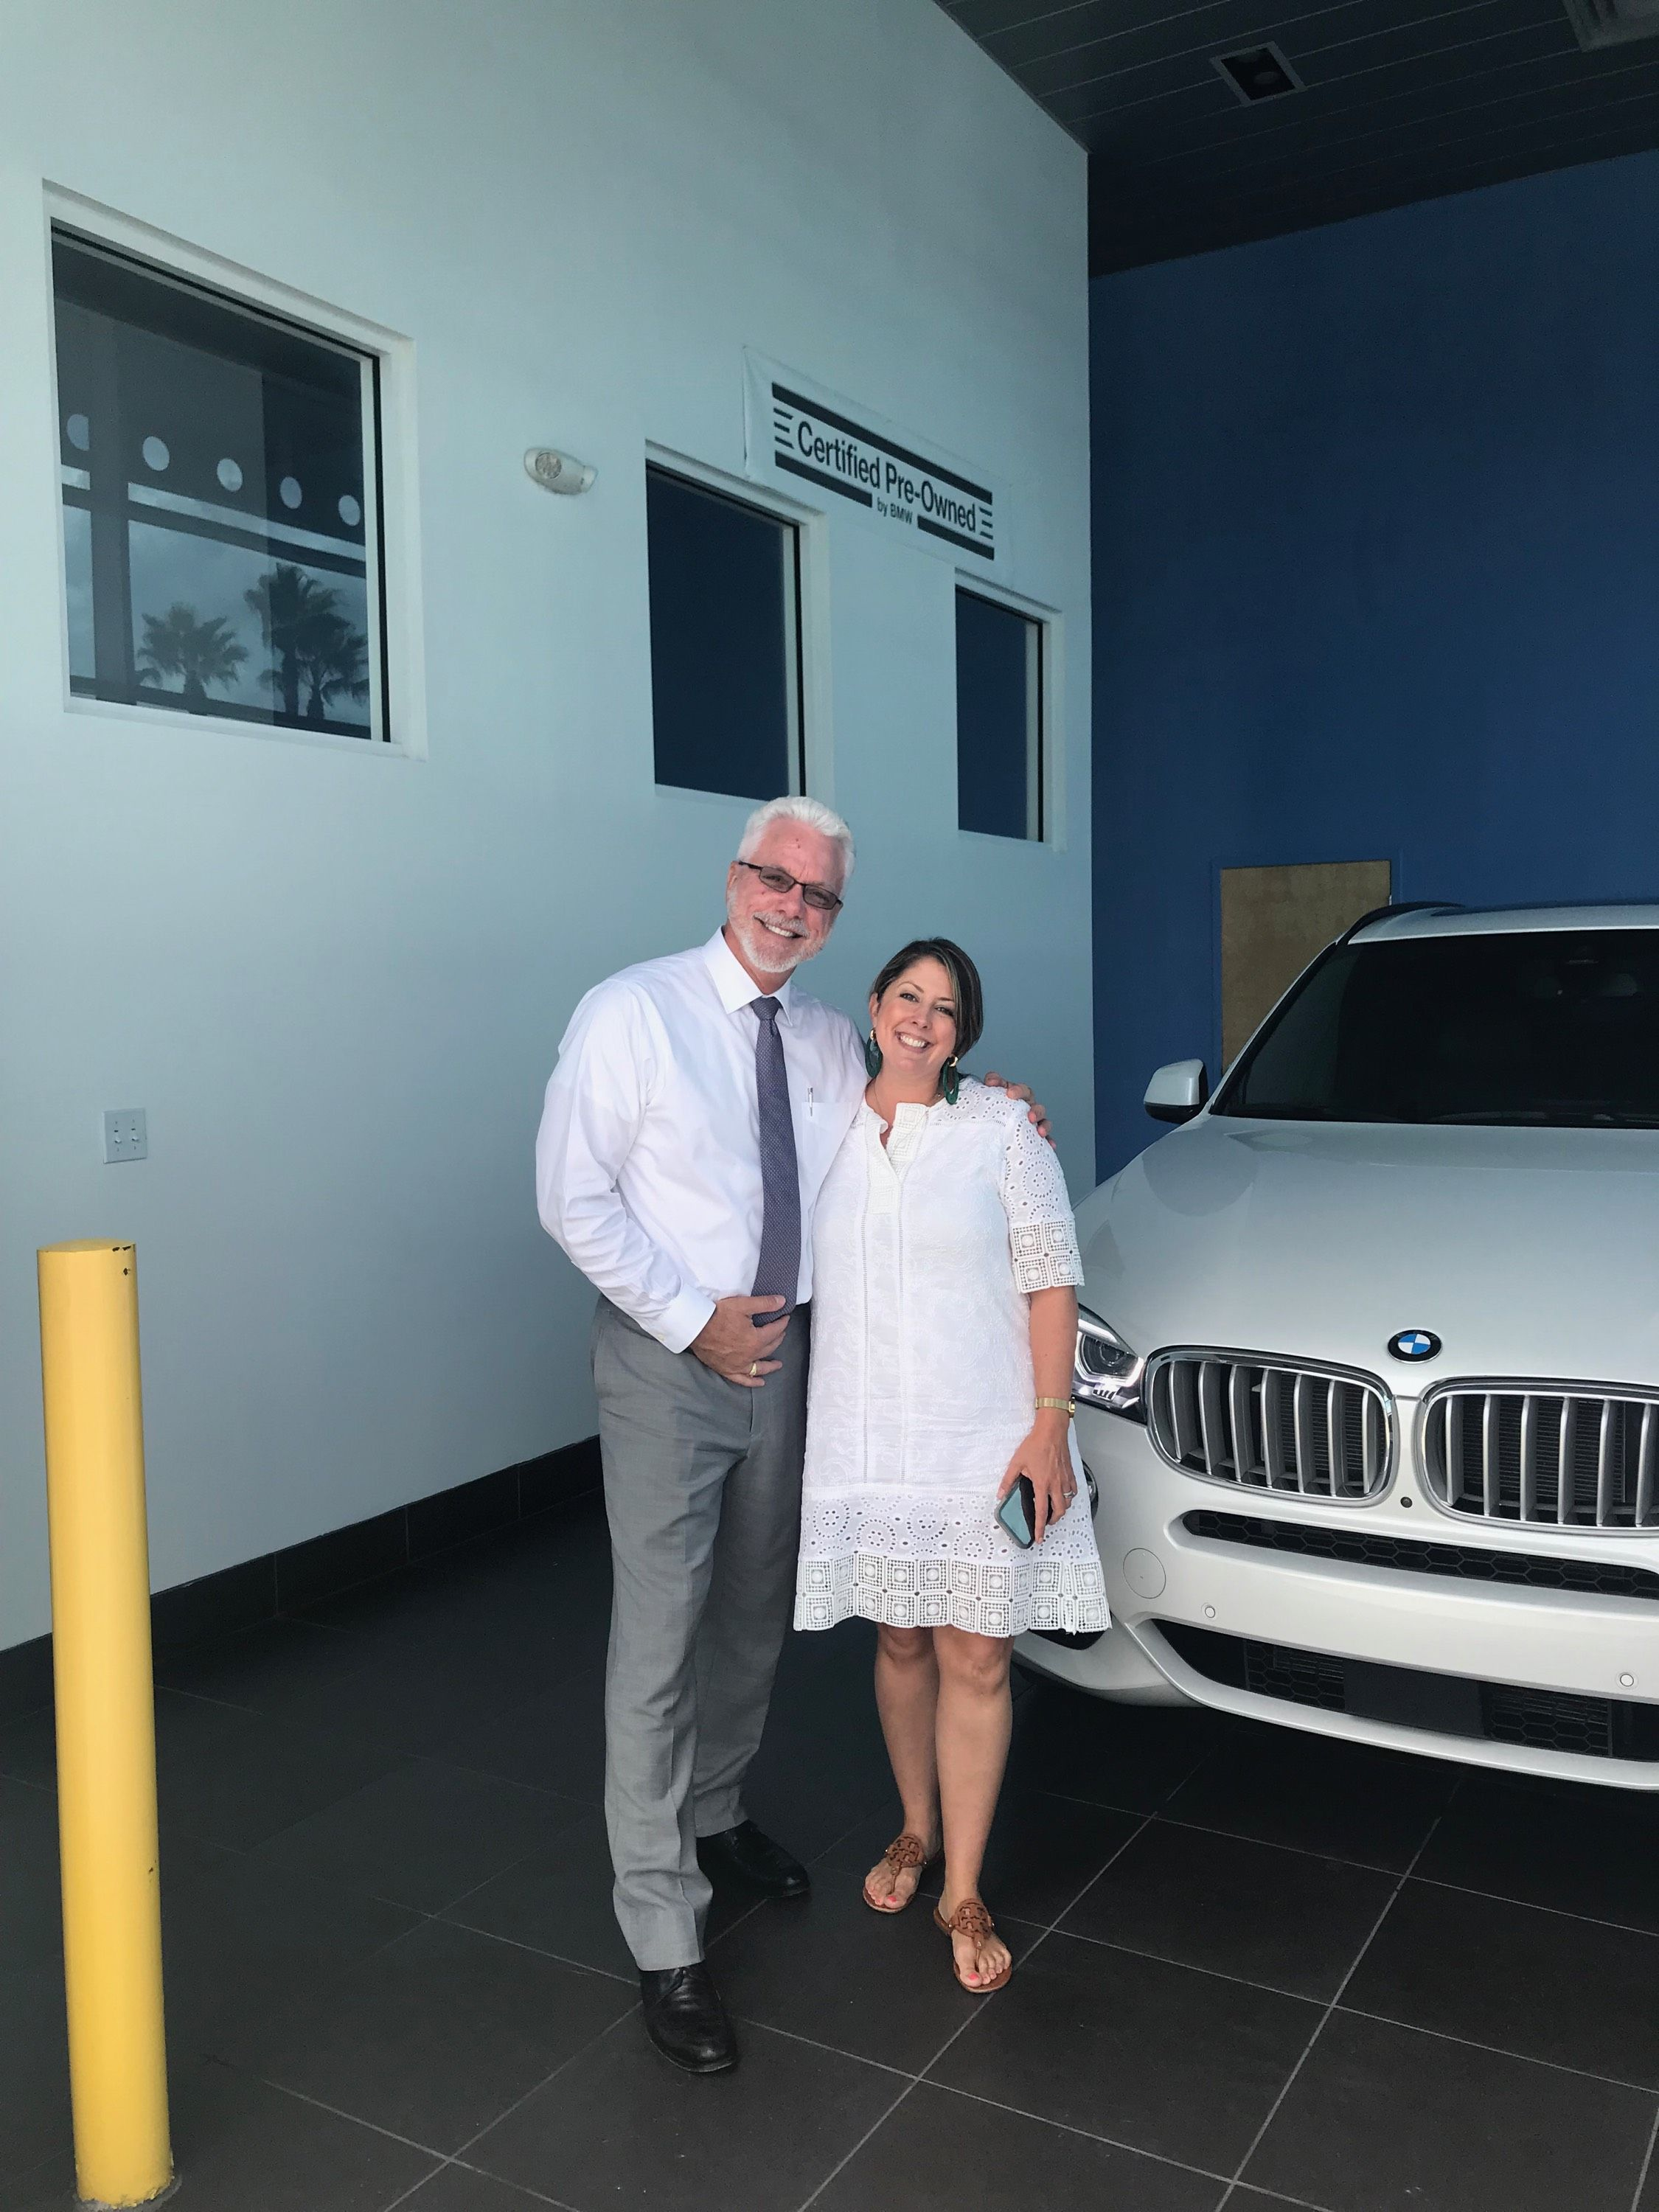 Congratulations Thank You To Allison On Your Purchase Of This Stunning Bmw X5 From Fieldsbmw In Winterpark Allison Worked With O Winter Park New Bmw Bmw